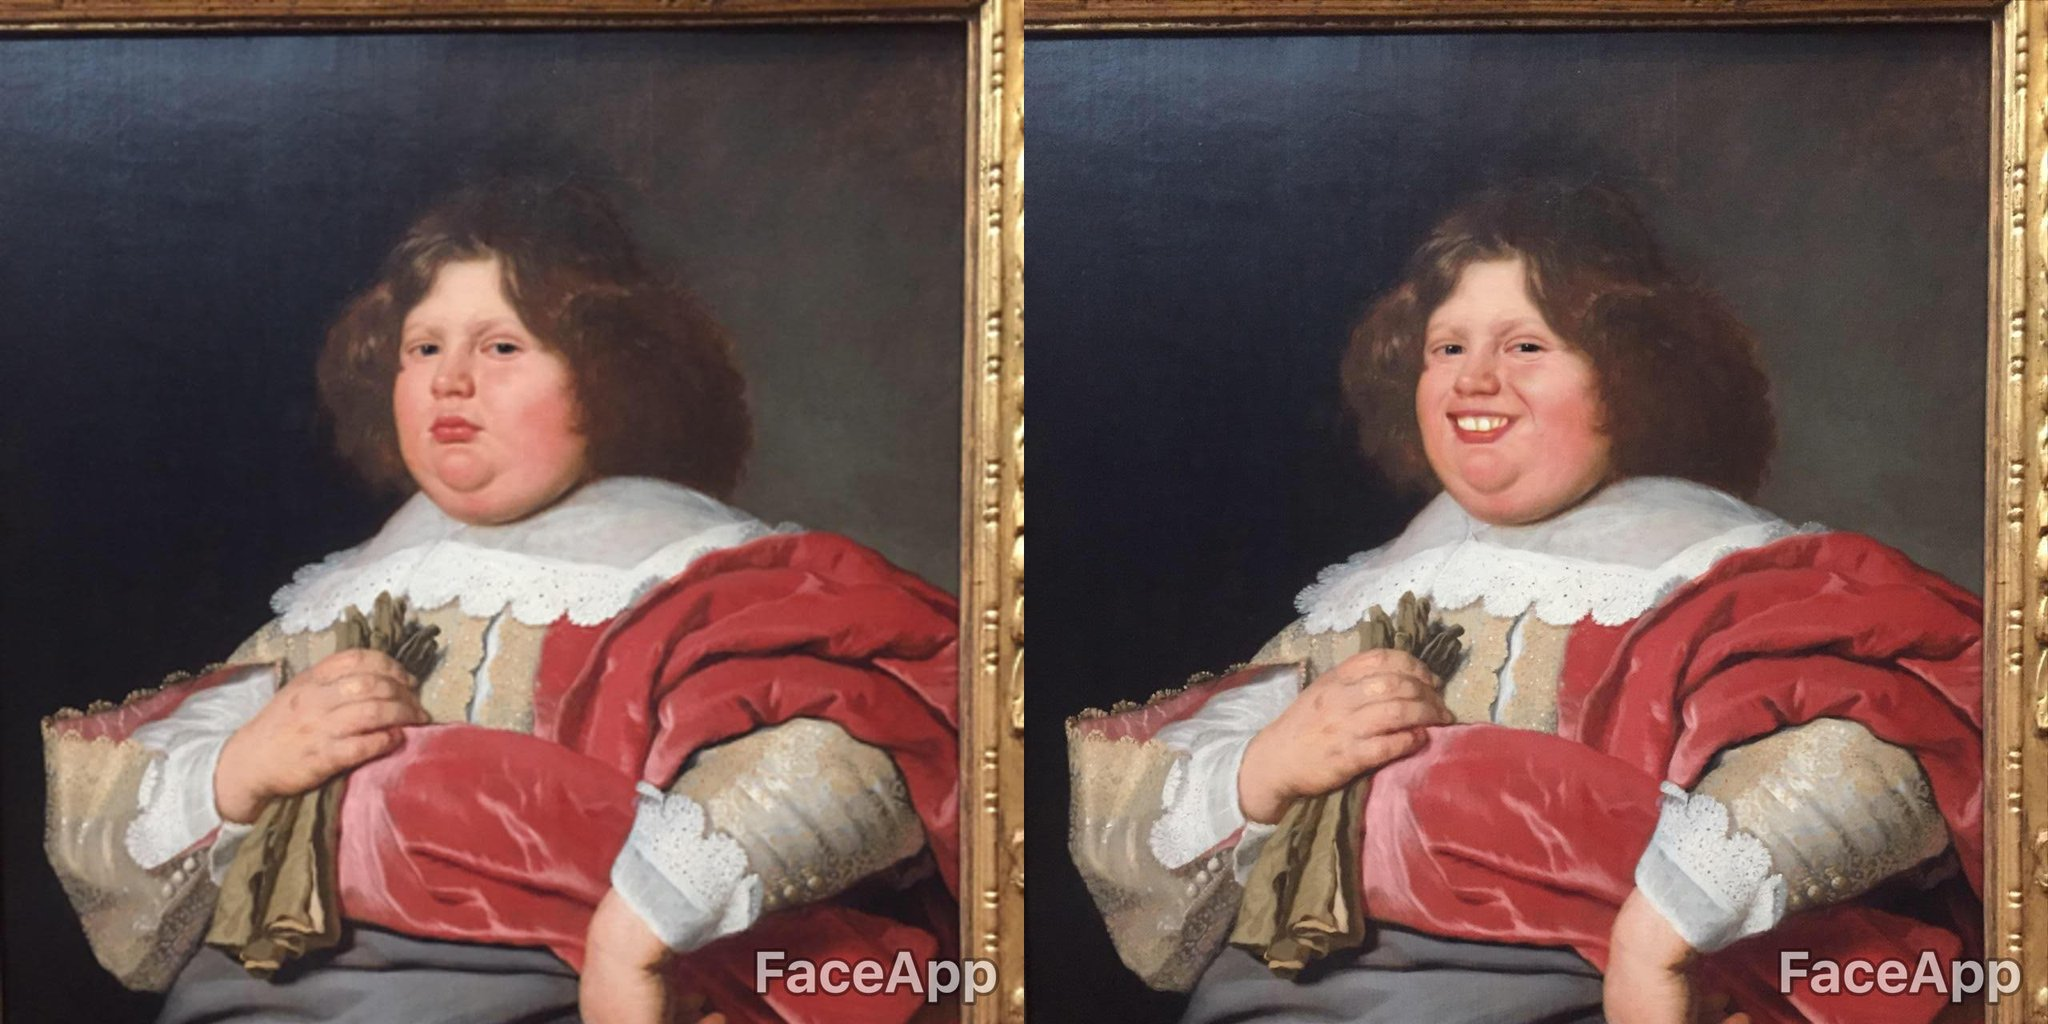 Went to a museum armed with Face App to brighten up a lot of the sombre looks on the paintings and sculptures. The results... https://t.co/N0zYGAFgKW